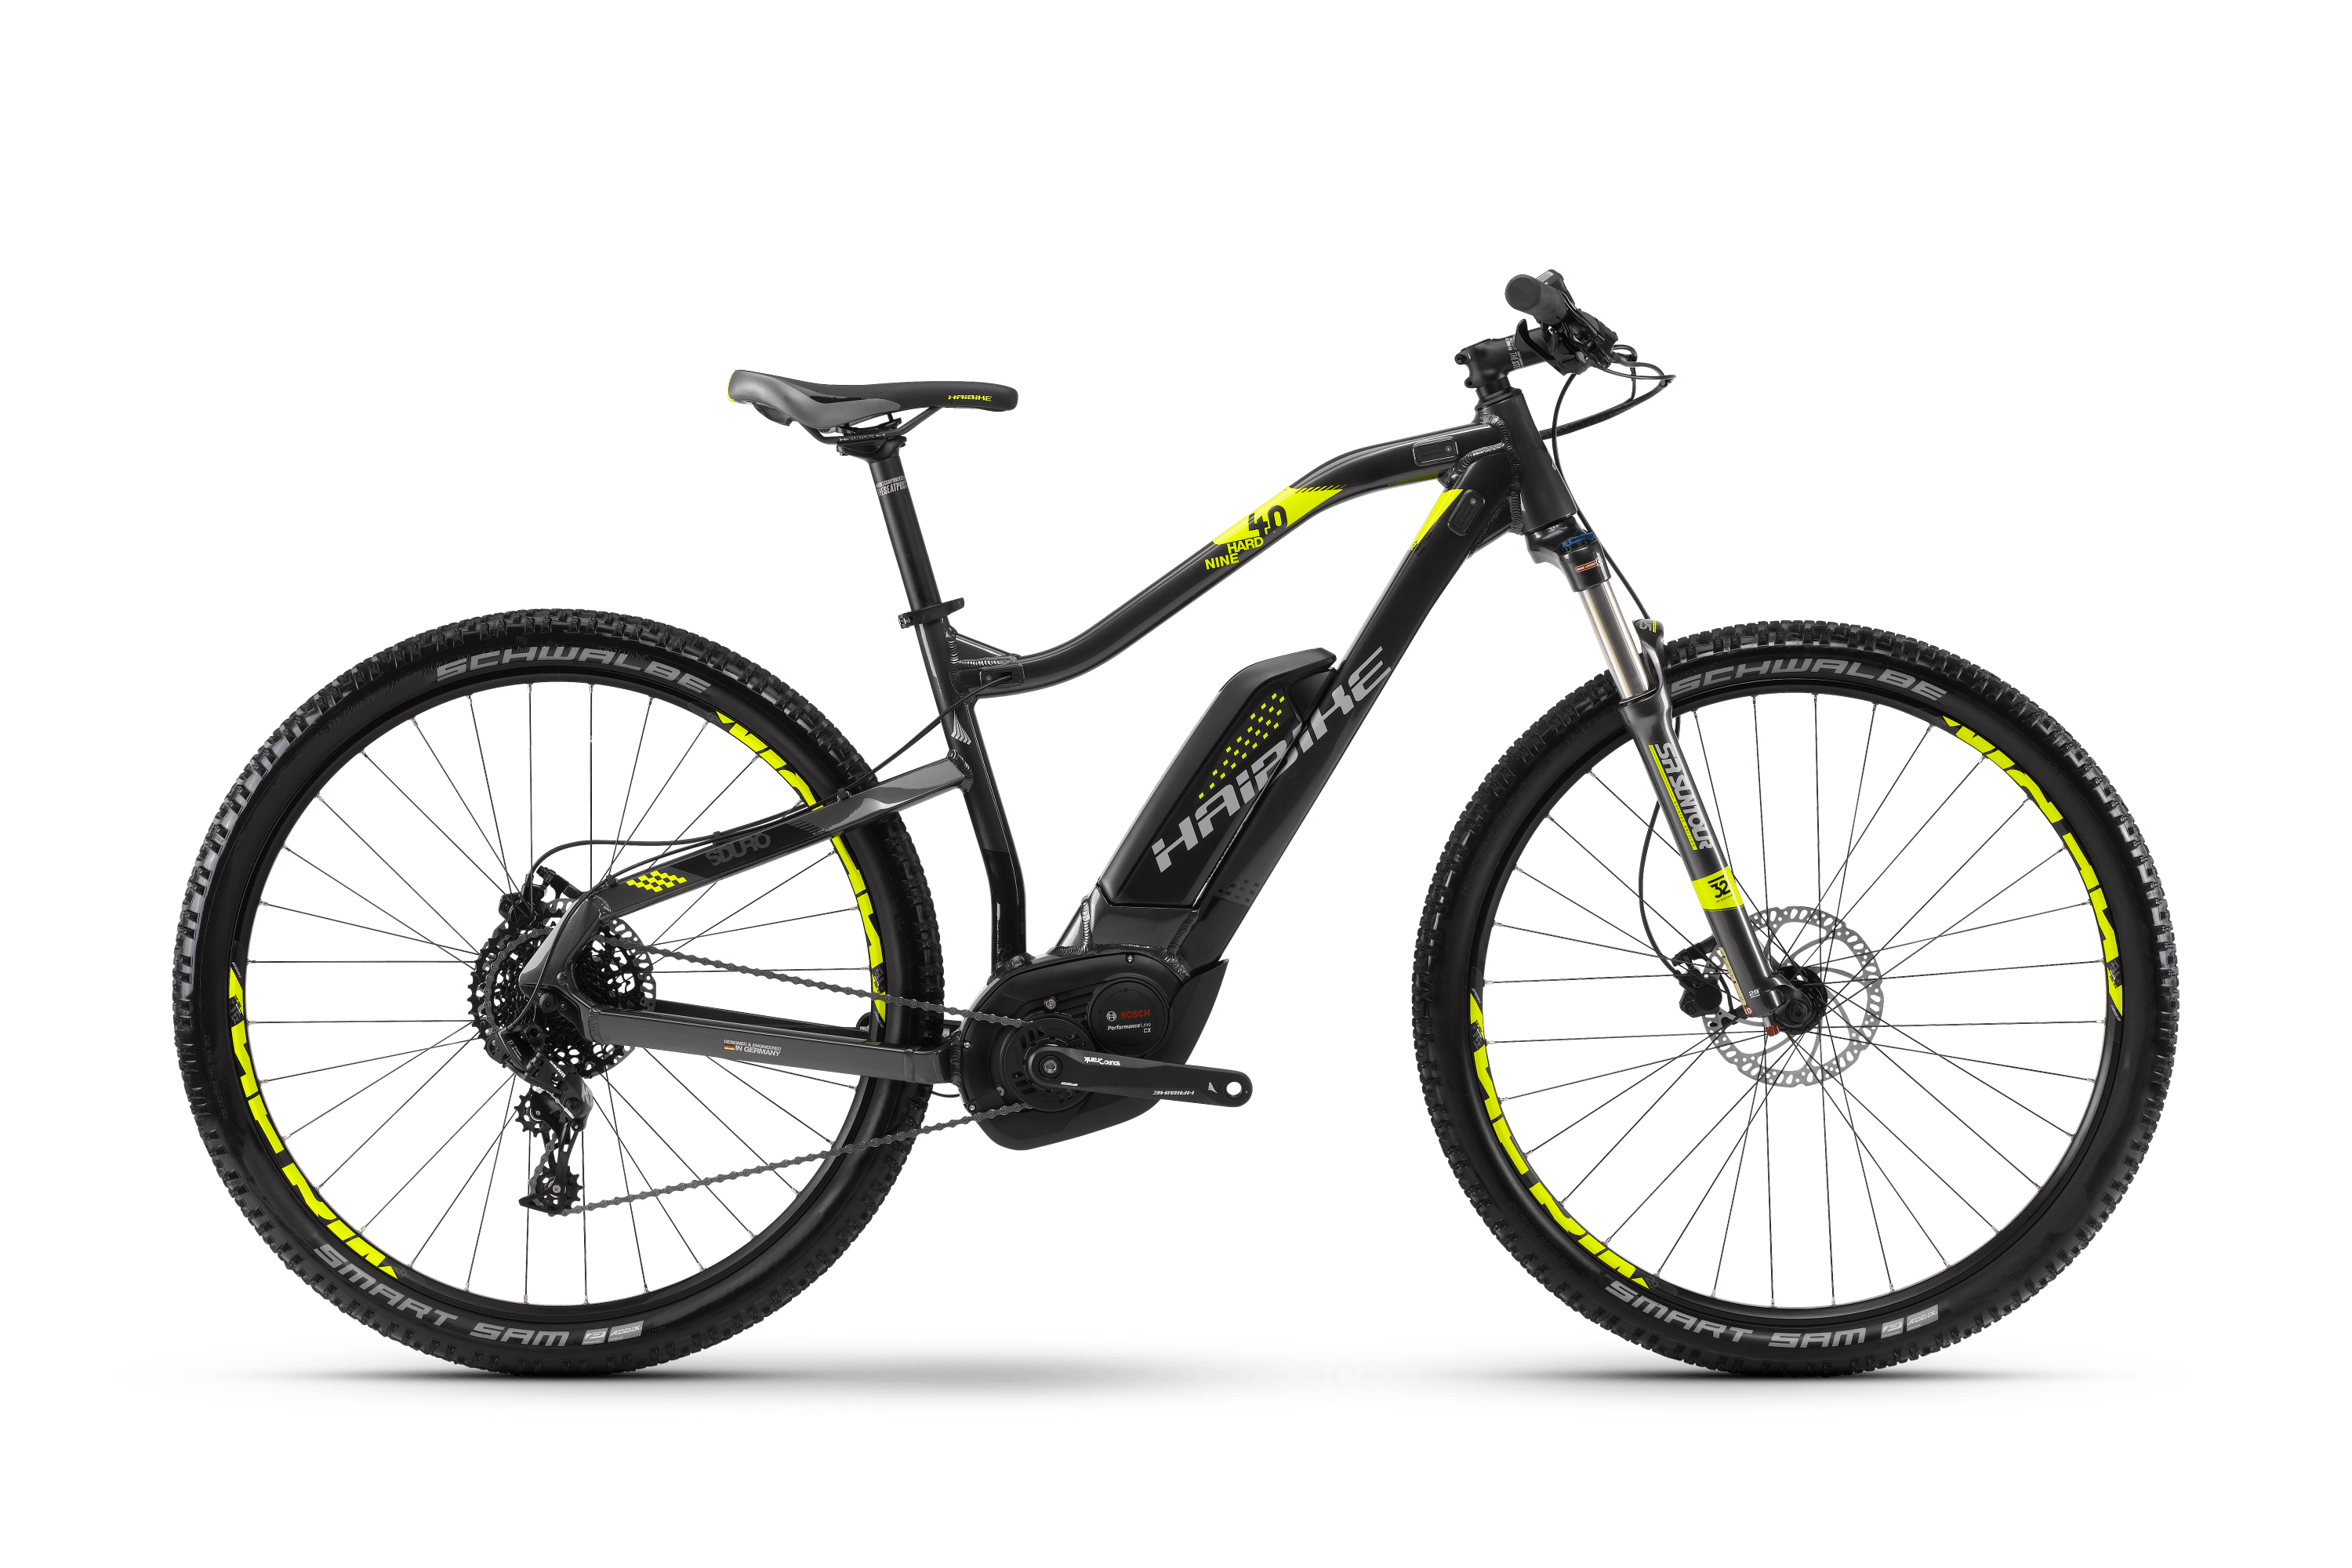 2018 haibike sduro hardnine 4 0 ebike blowout. Black Bedroom Furniture Sets. Home Design Ideas